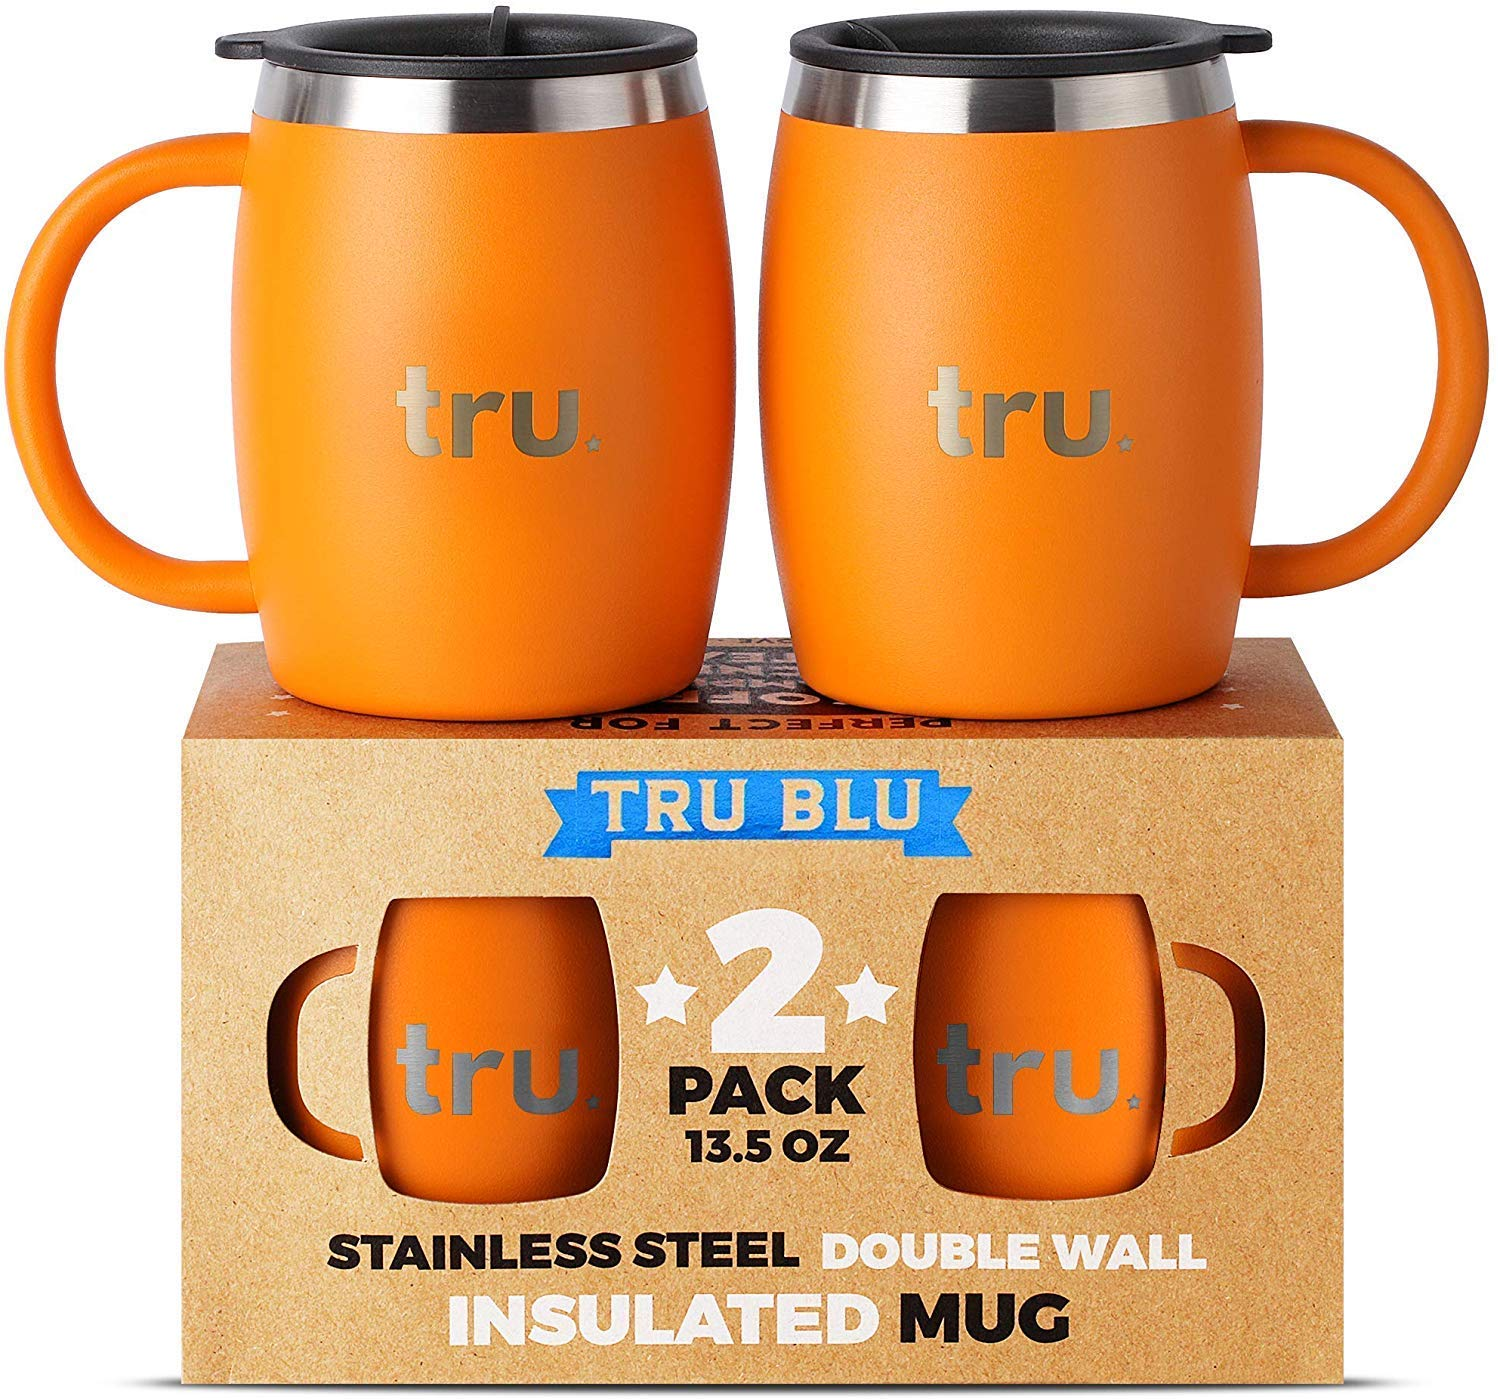 Insulated Coffee Mug with Lid (Set of 2) - Stainless Steel Camping Mug with Handle, Double Wall Metal Cup - BPA Free, Shatterproof, Dishwasher Safe (13.5oz)